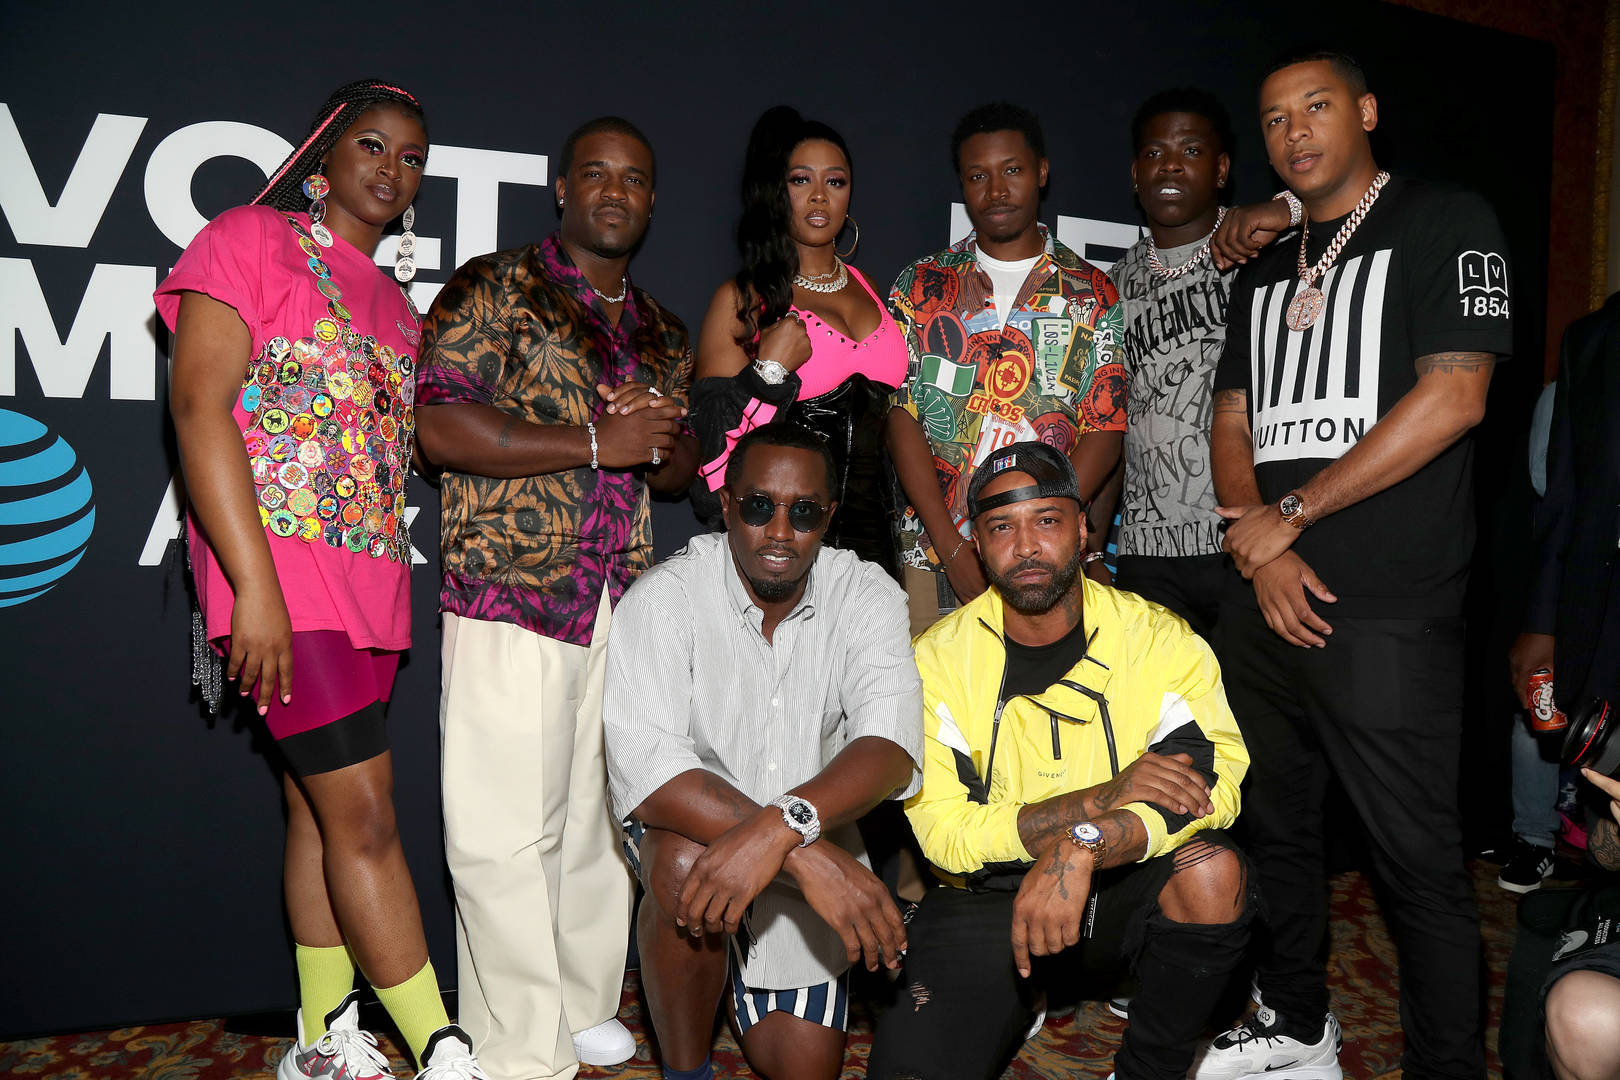 Diddy Partners With TDE To Bring REVOLT Summit To L.A.: Snoop Dogg, Killer Mike, & More